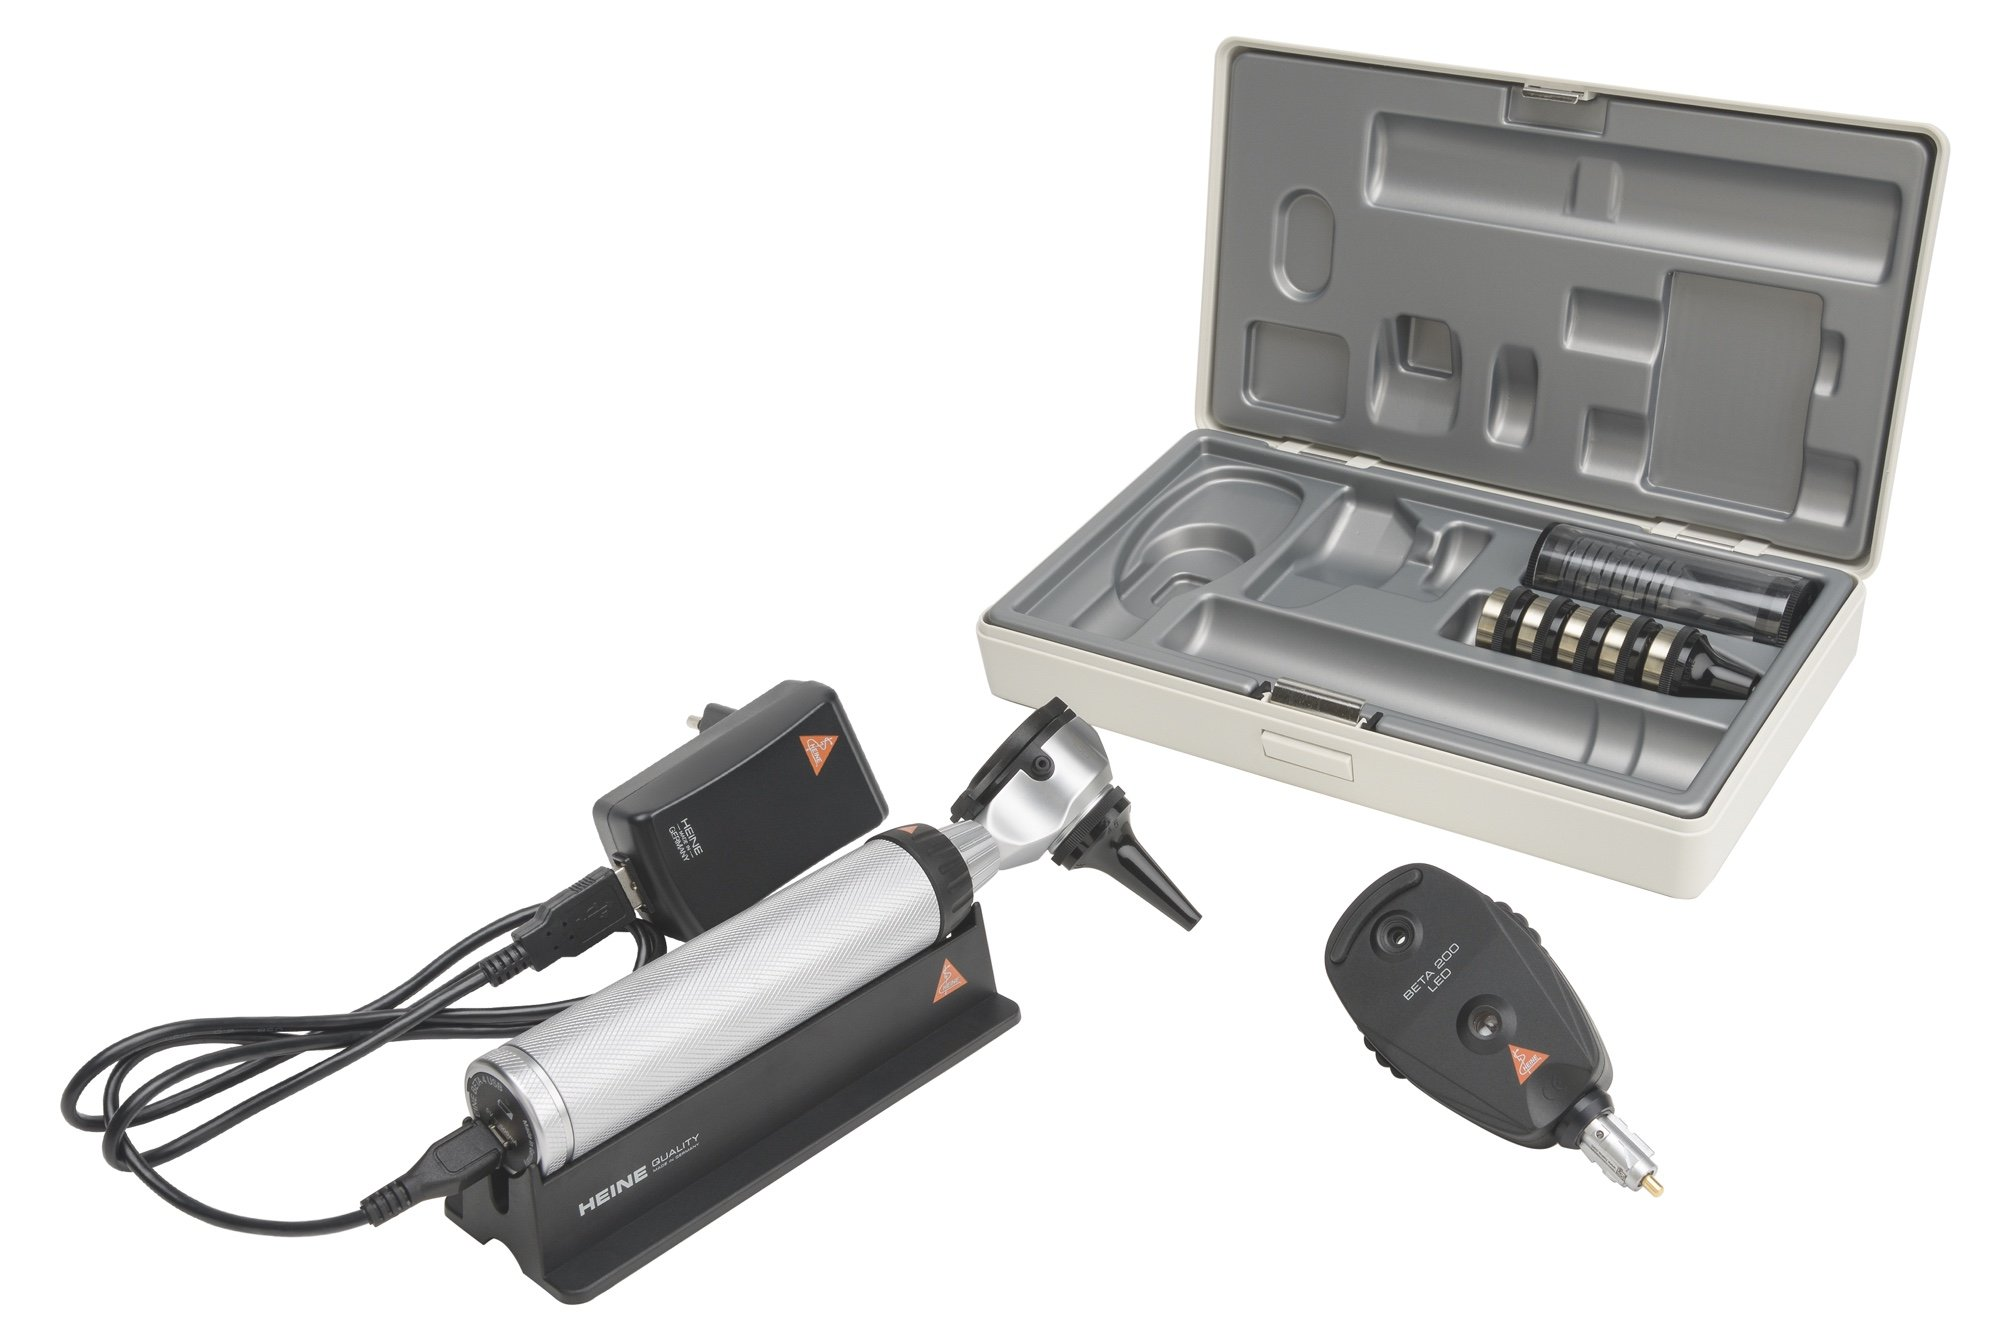 HEINE Diagnostic Set: BETA 100 Otoscope & BETA 200 LED Opthalmoscope (USB Rechargeable Handle)